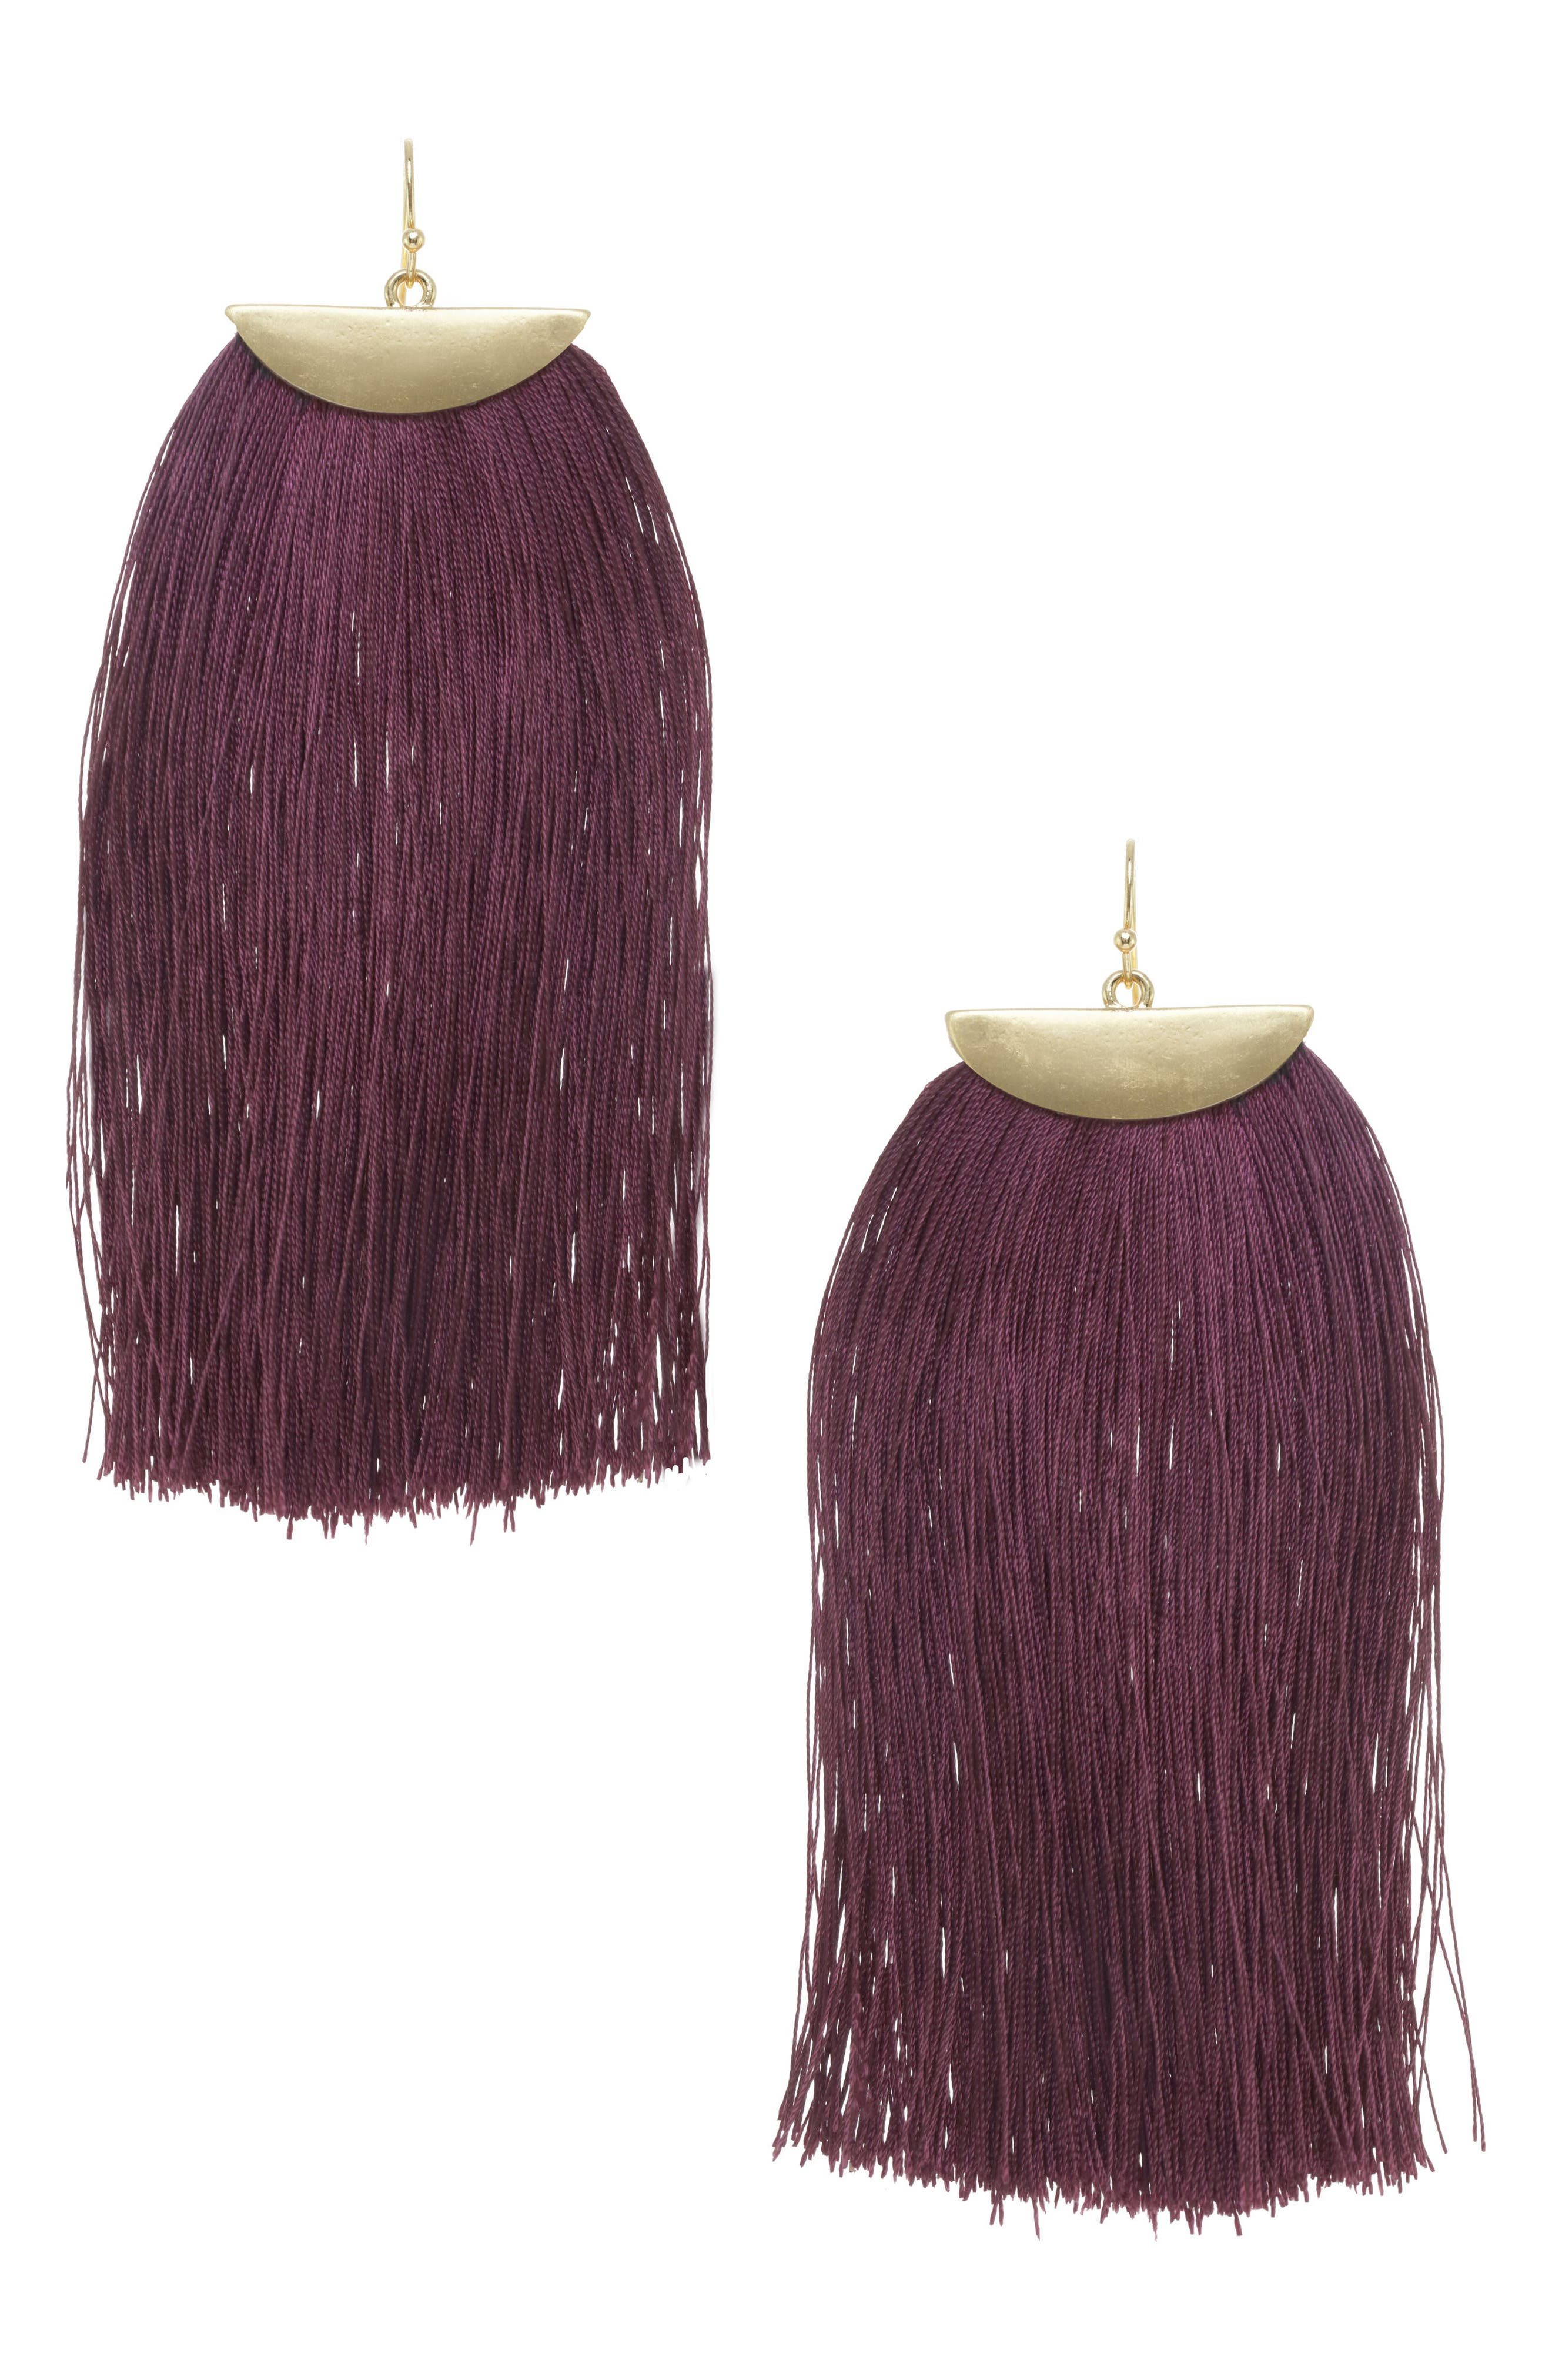 Main Image - Stella + Ruby Fringe Tassel Earrings